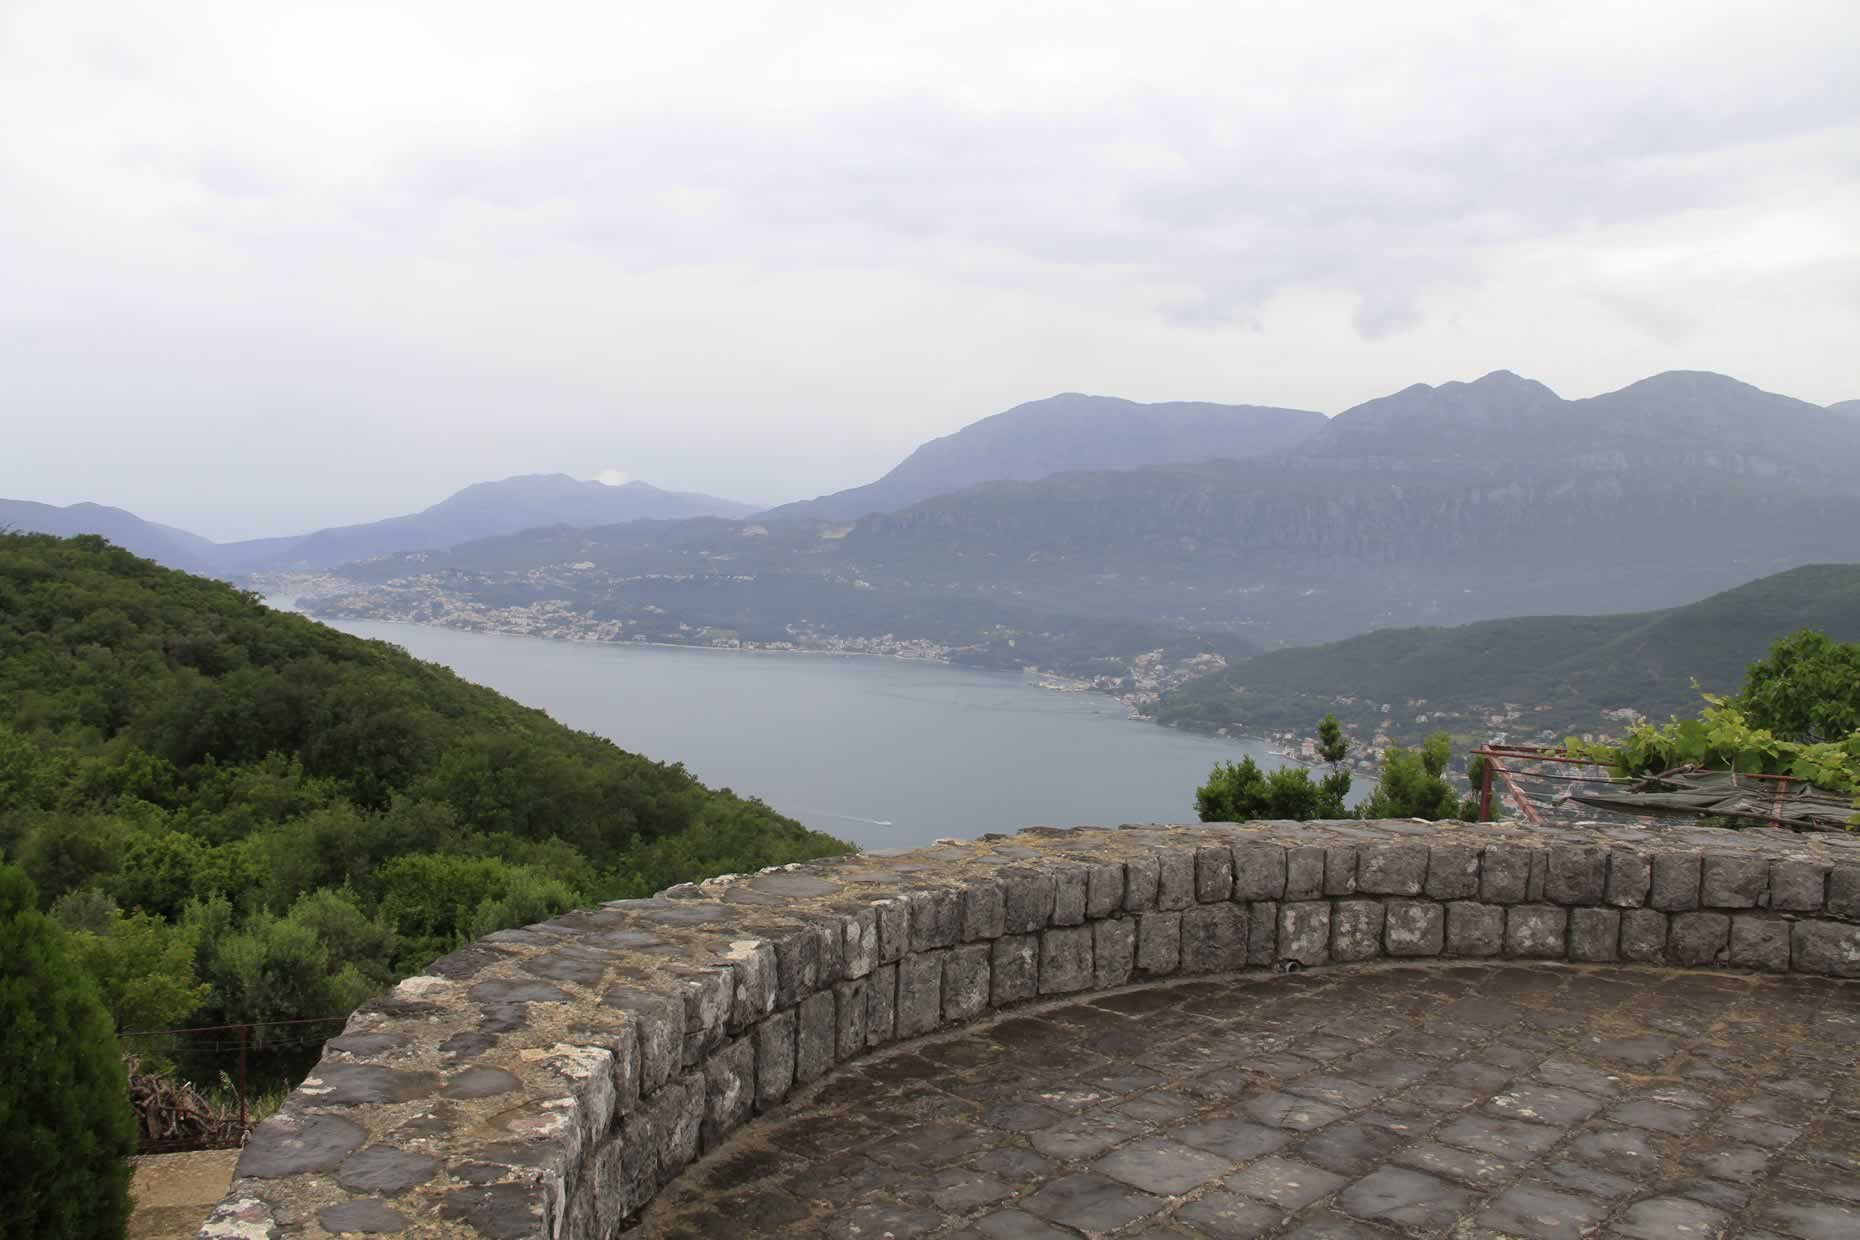 Lookout from Peninsula of Lustica